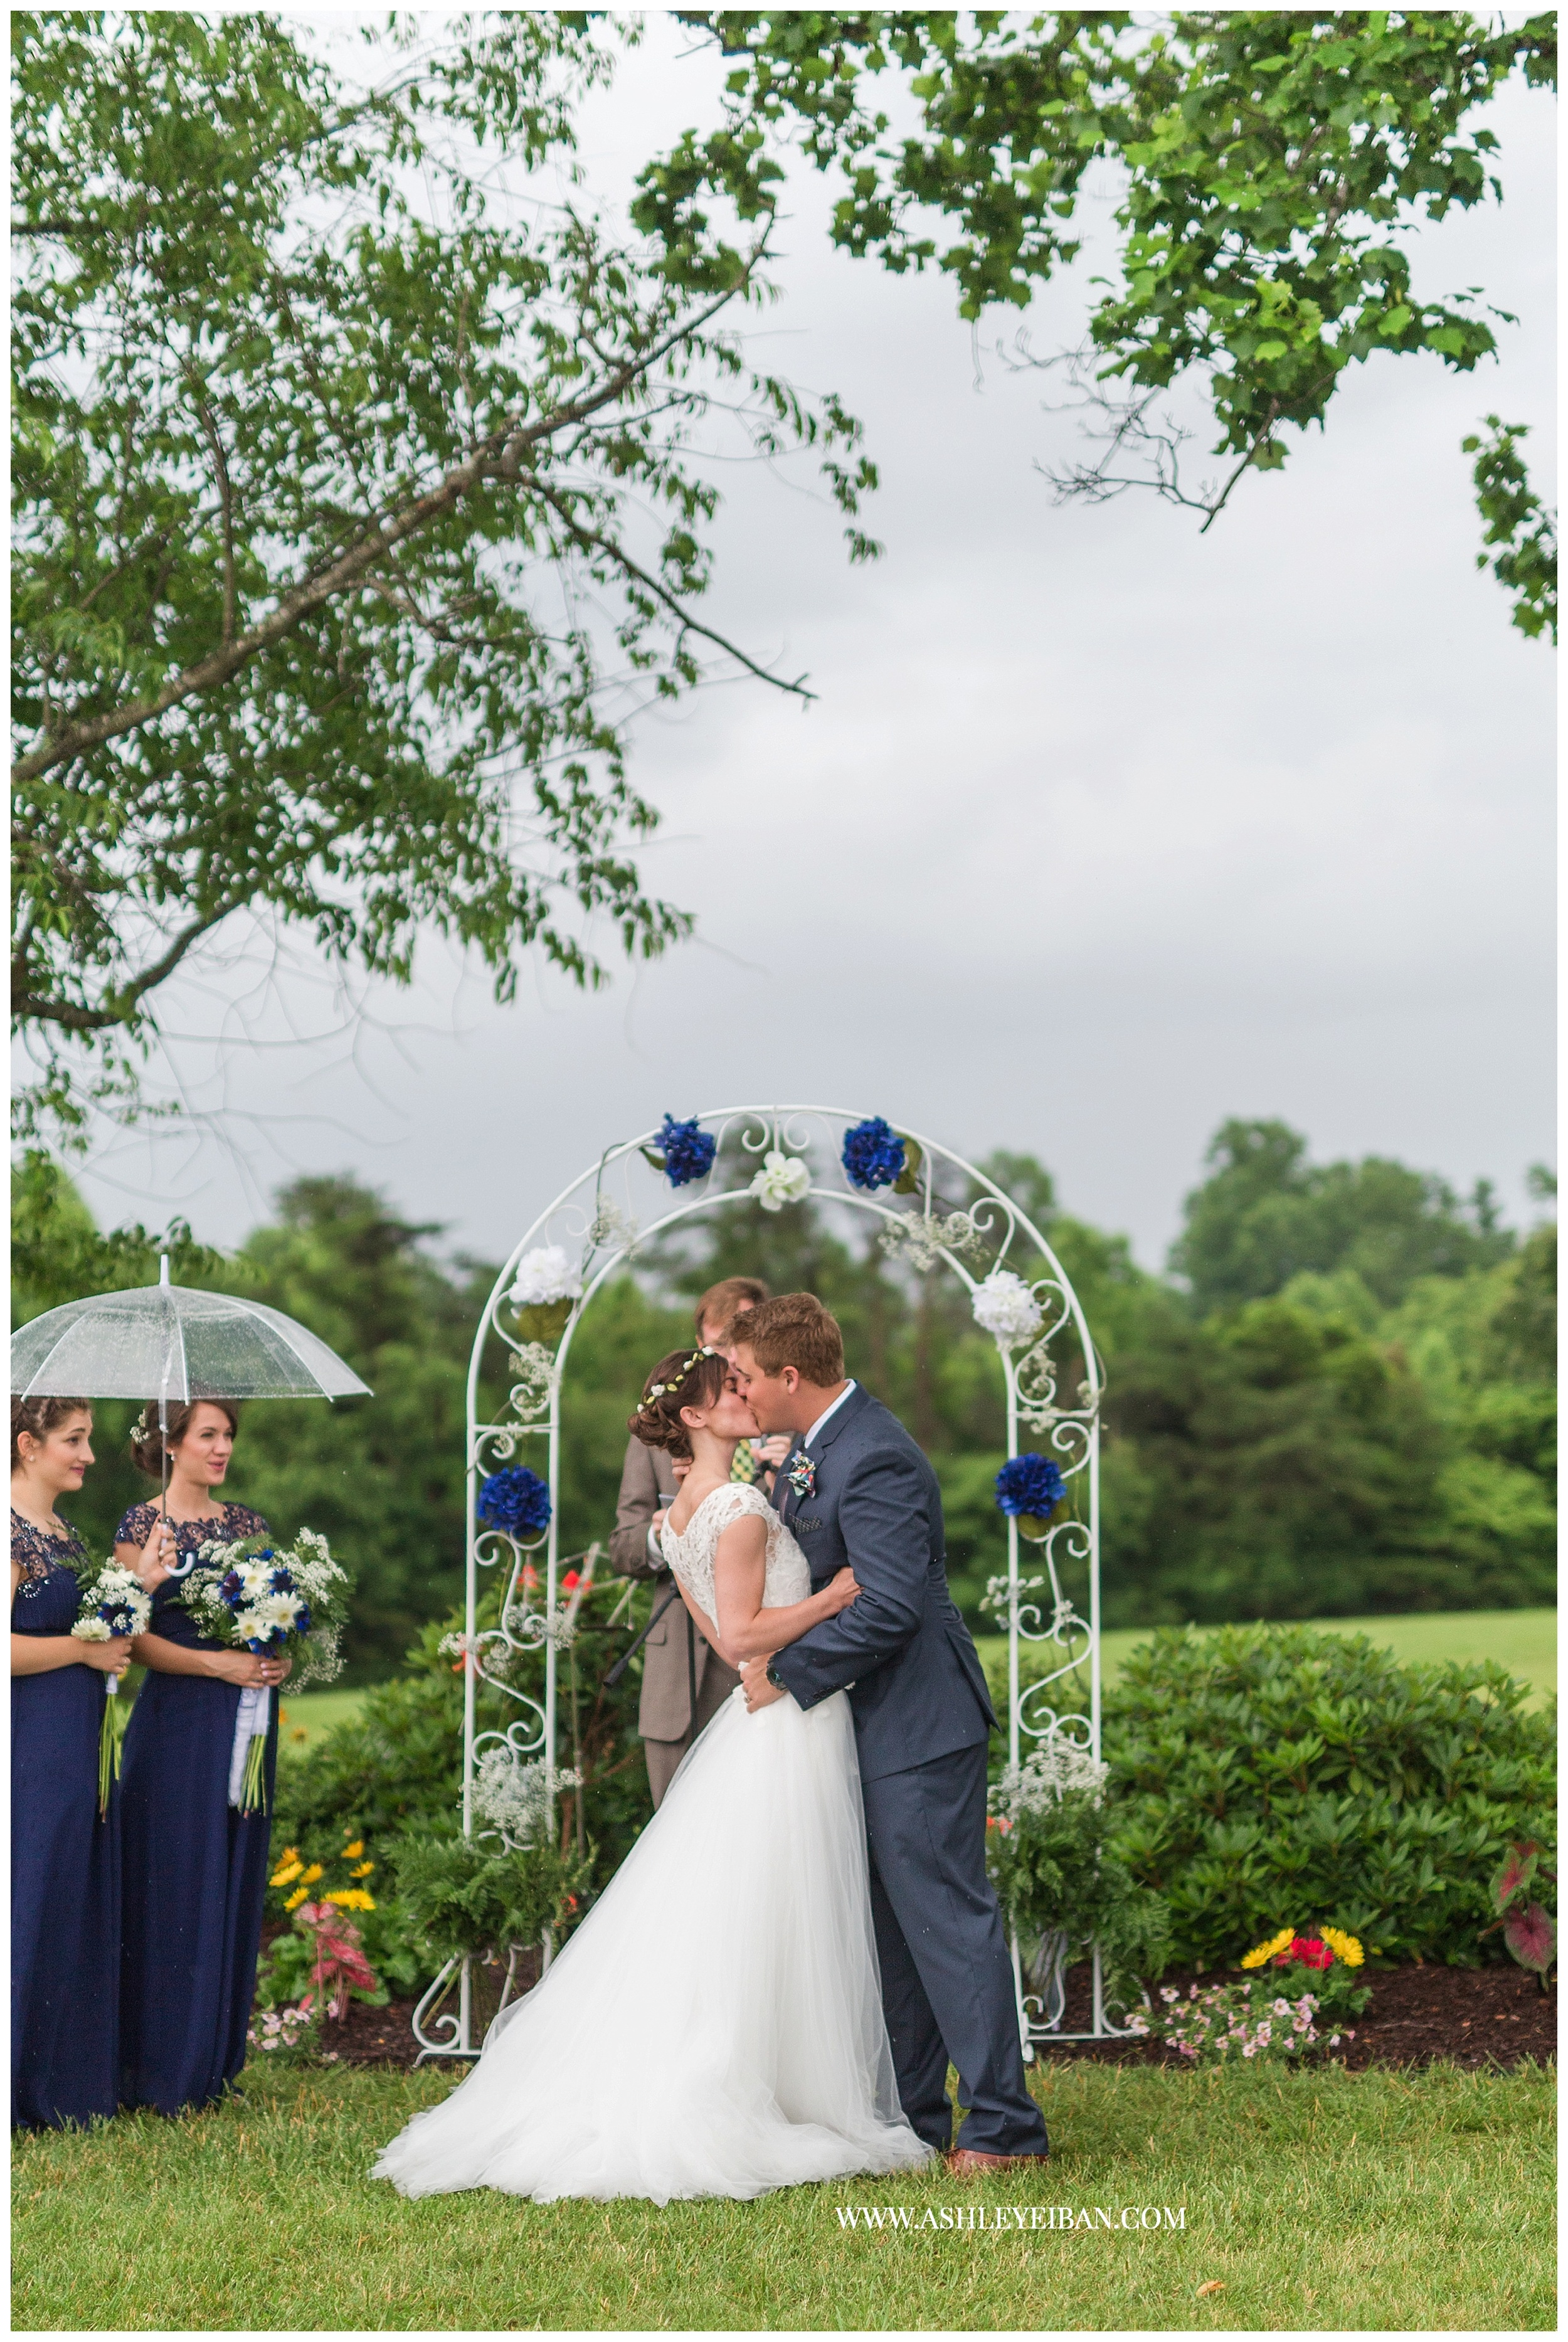 Lynchburg Wedding Photographer || Backyard Virginia Wedding || Ashley Eiban Photography || www.ashleyeiban.com